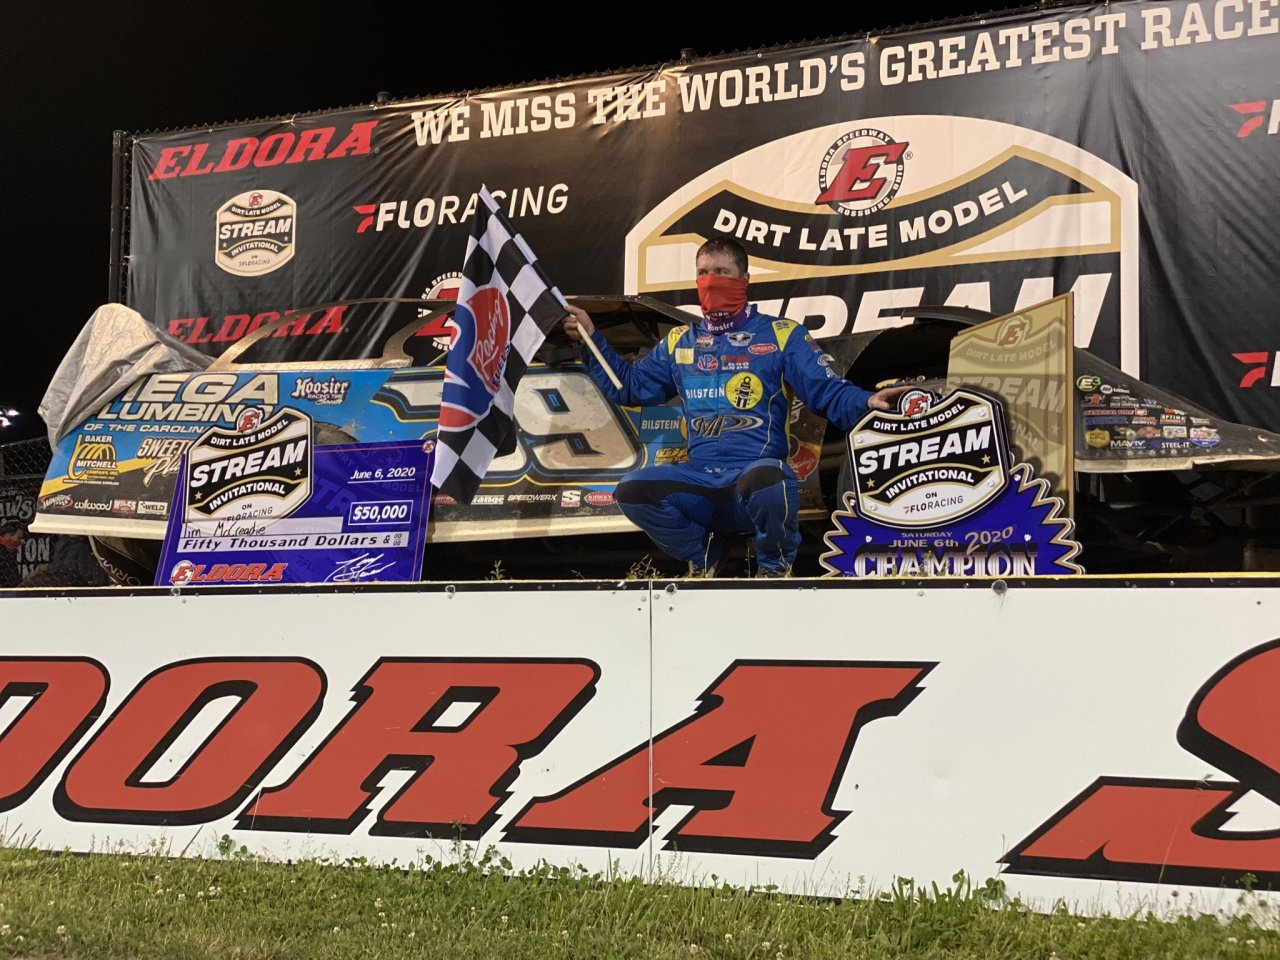 Tim McCreadie in victory lane at the Dirt Late Model Stream